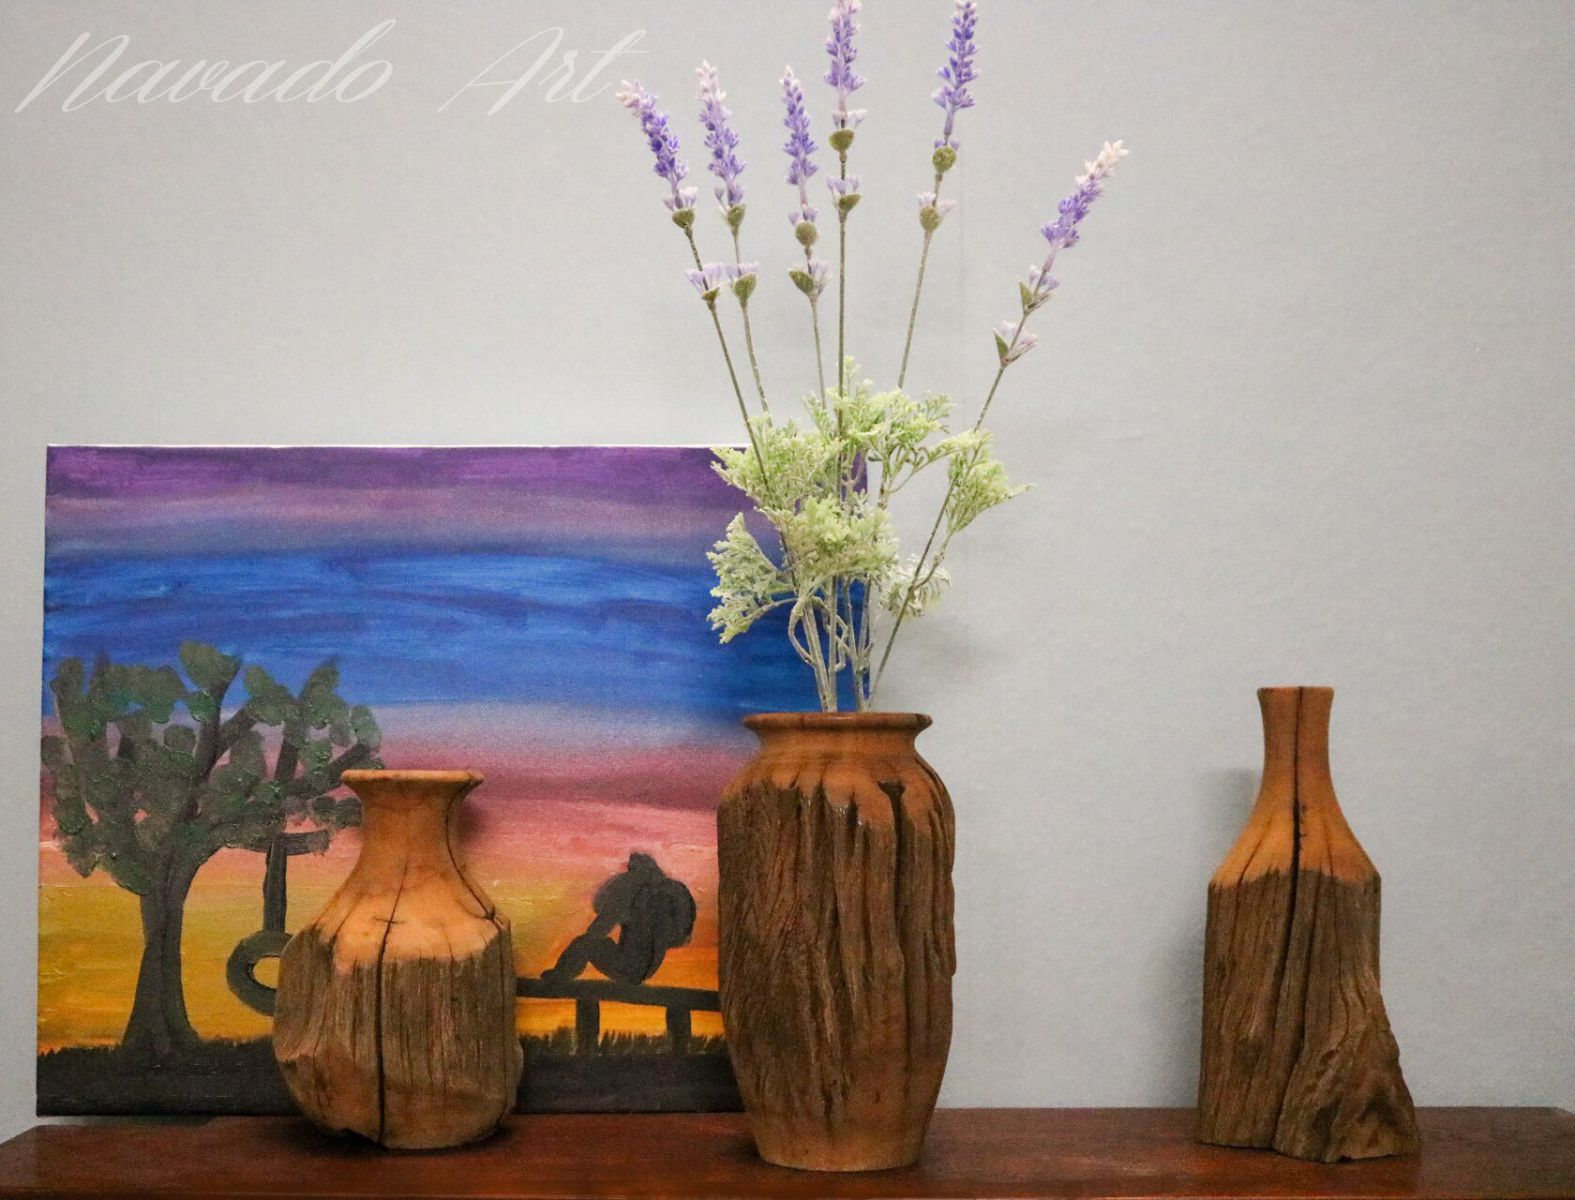 wooden-vase-decorate-house